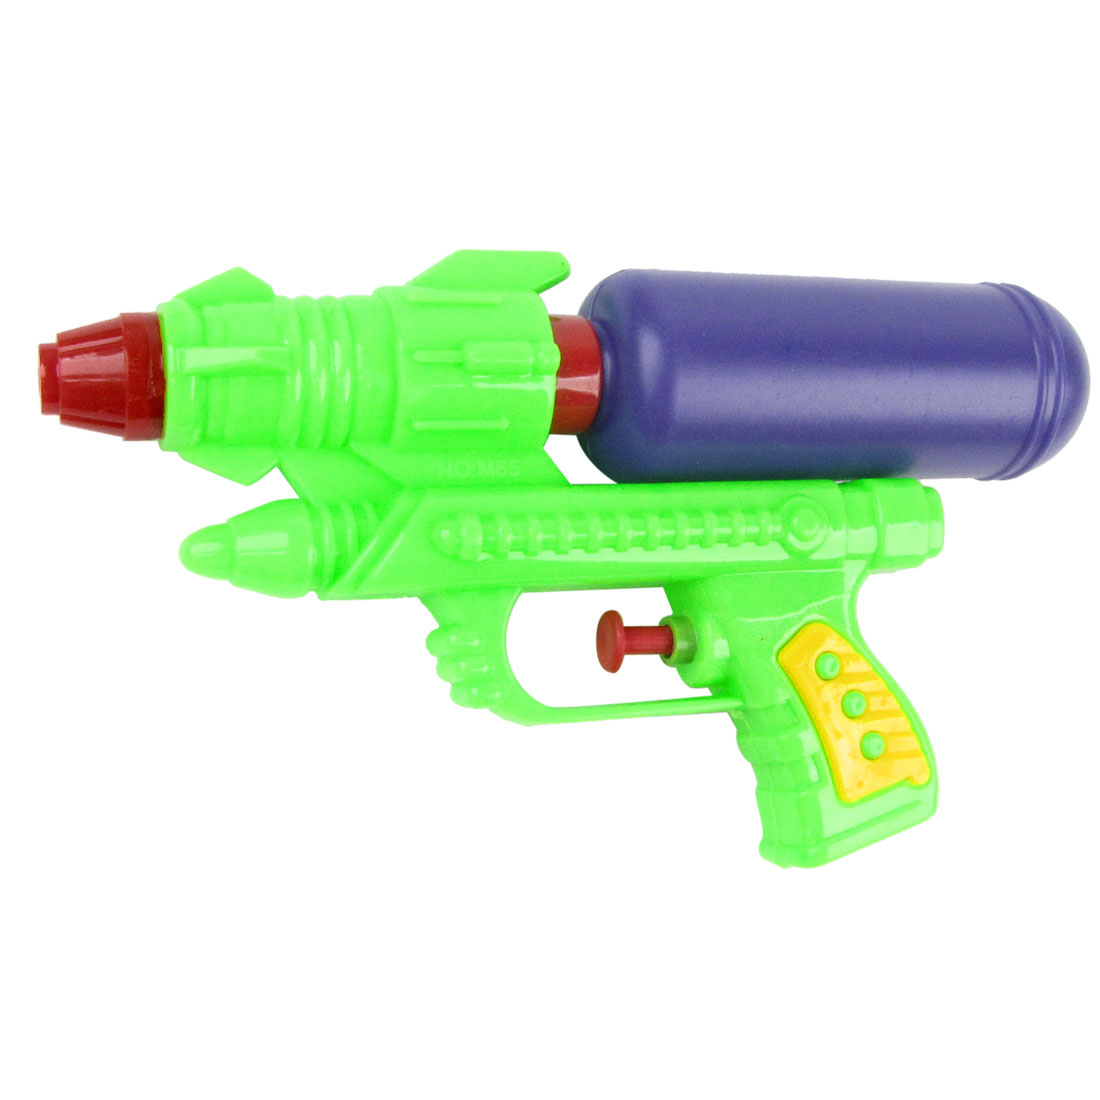 "7.1"" Long Green Purple Plastic Water Gun Squirt Toy for Children"